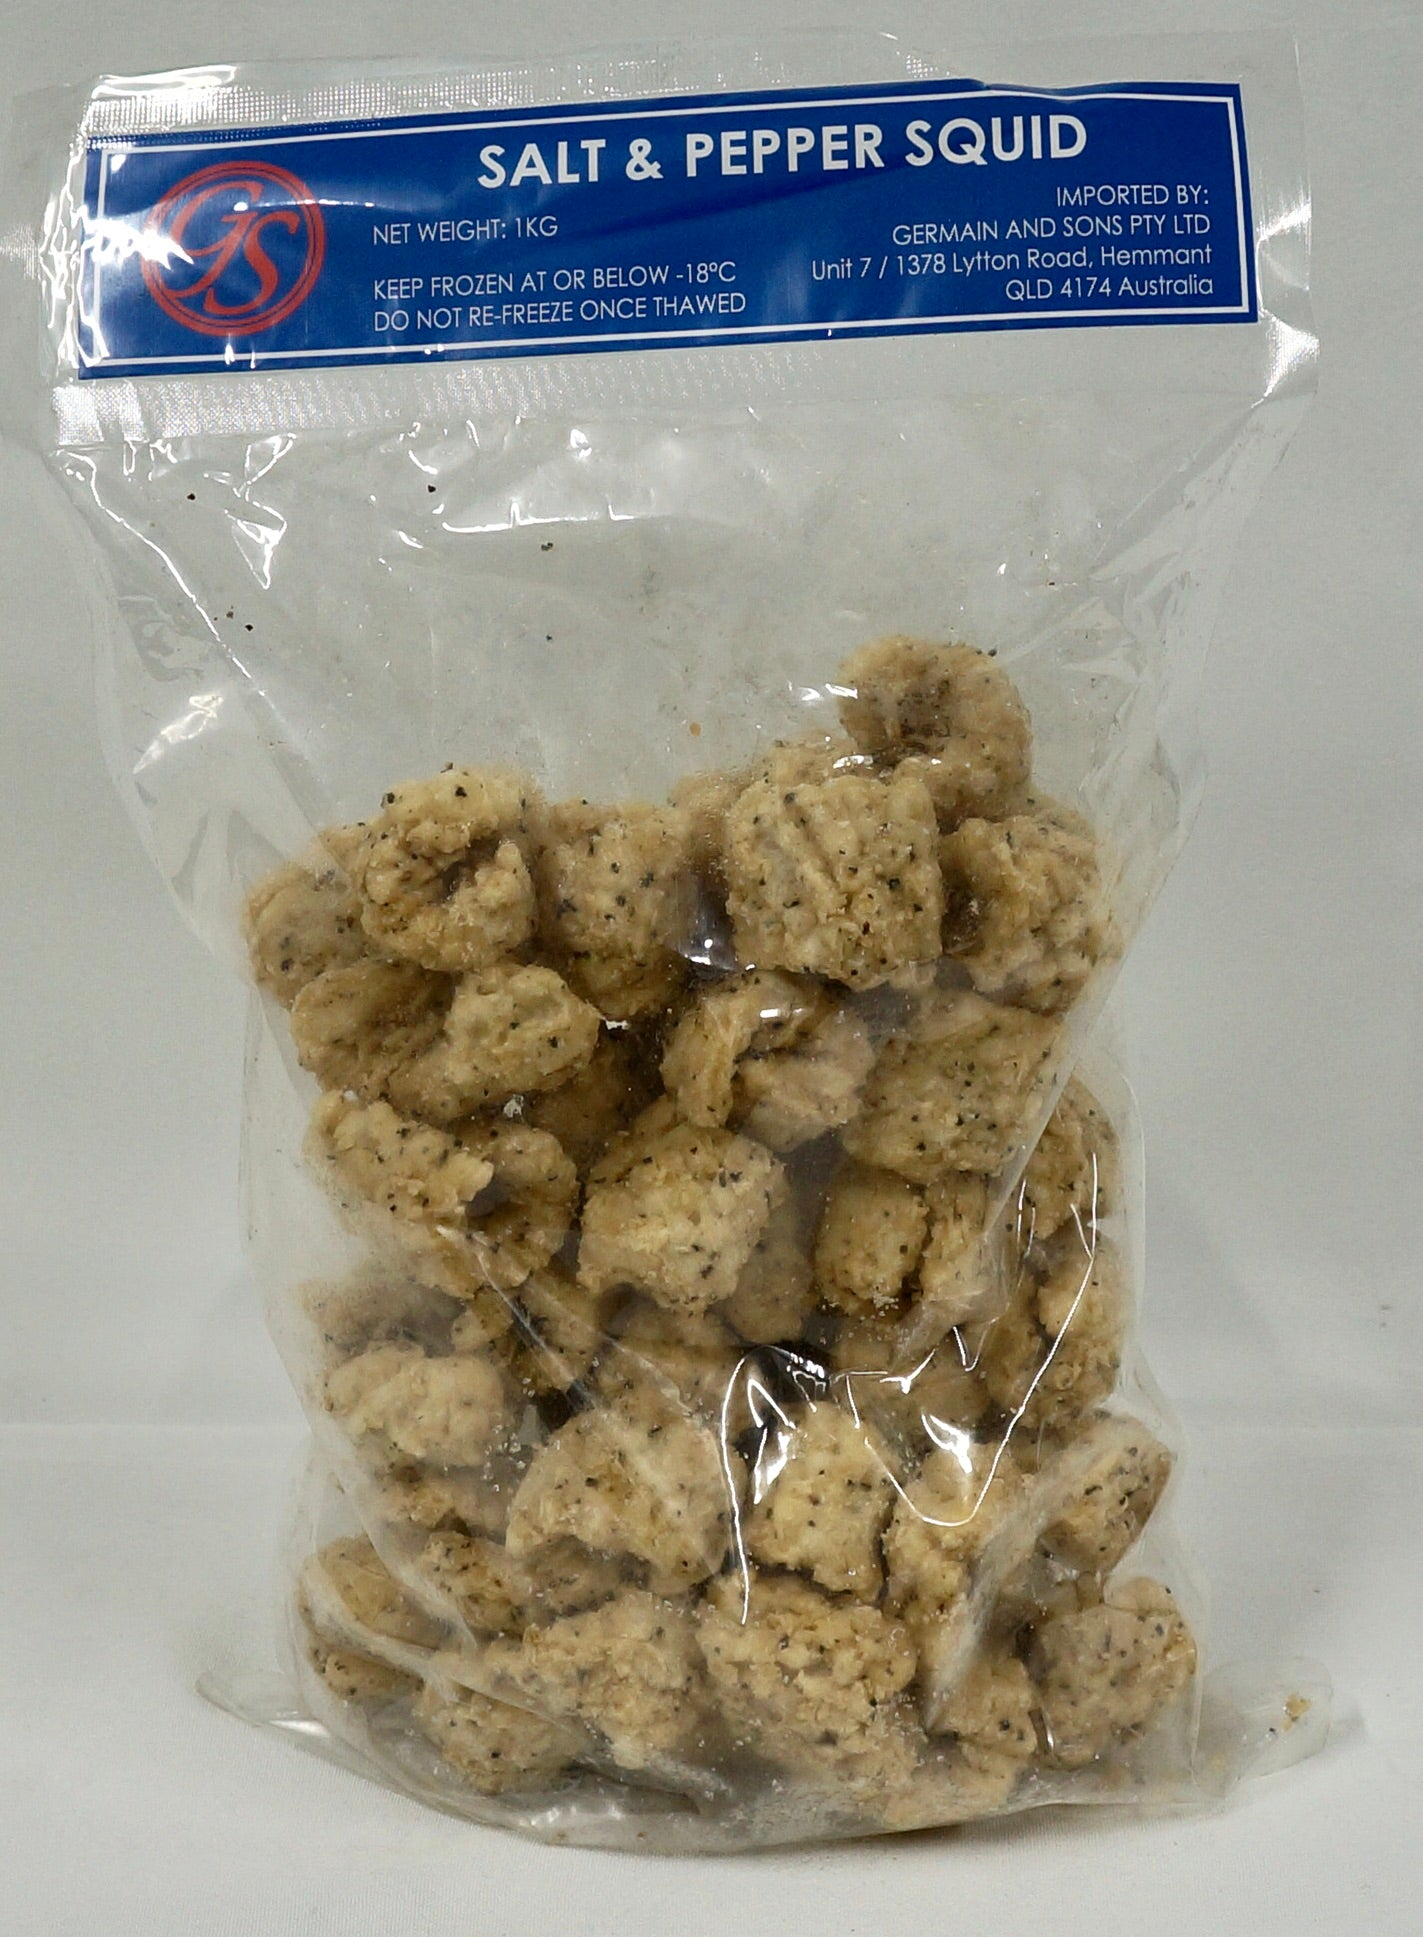 Salt and Pepper Calamari 1kg Bag